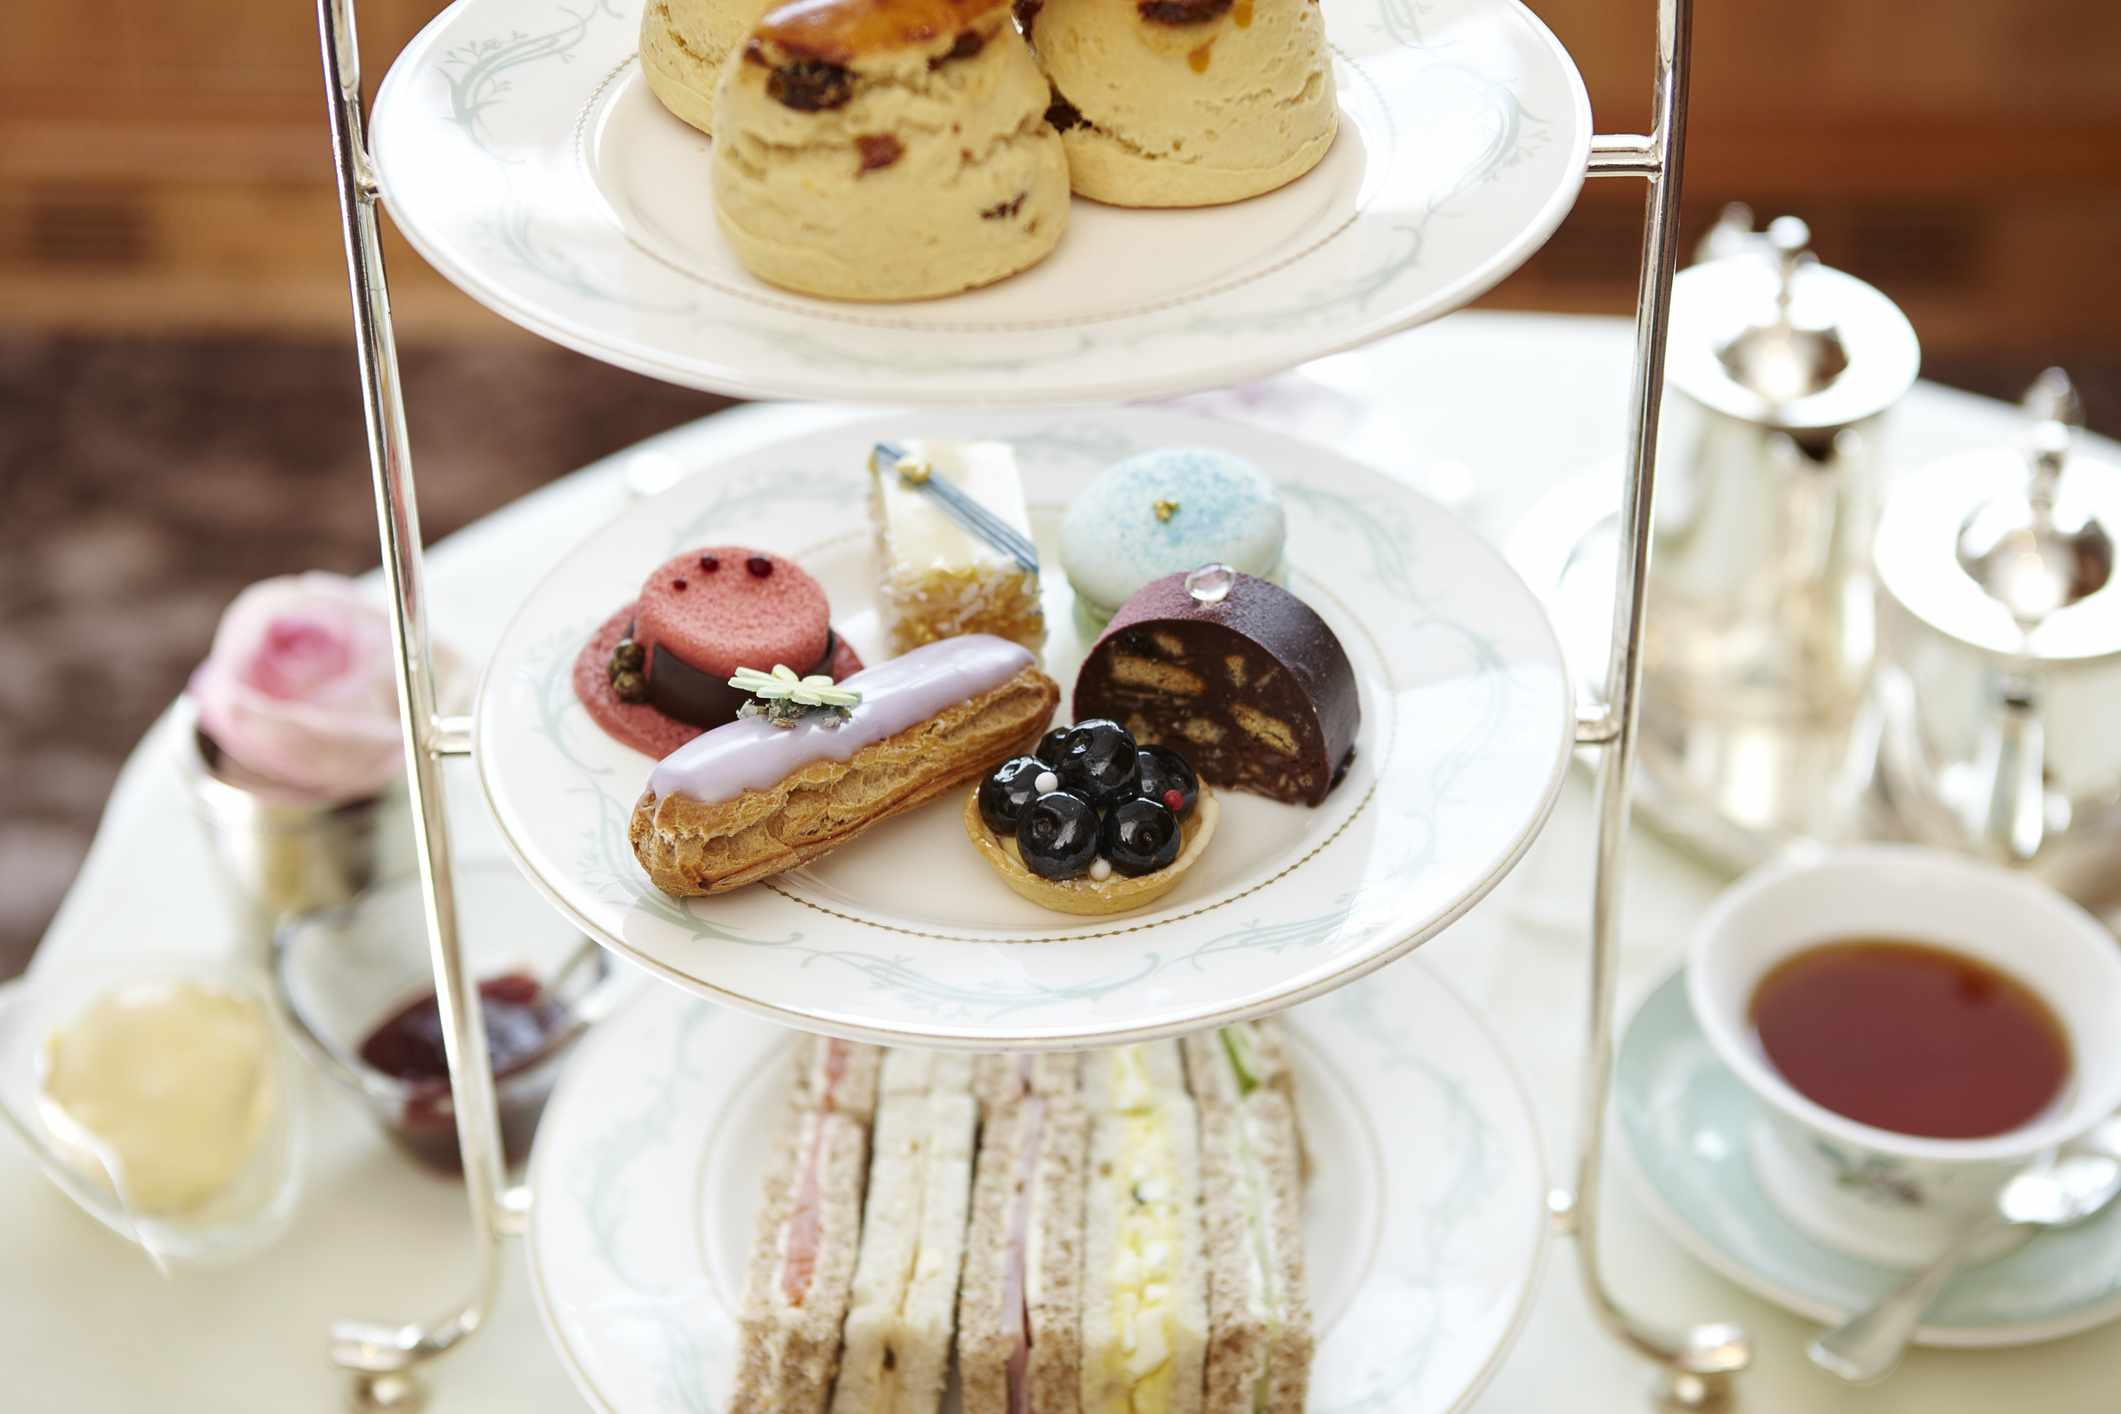 Afternoon tea with scones, cakes, jam and cream